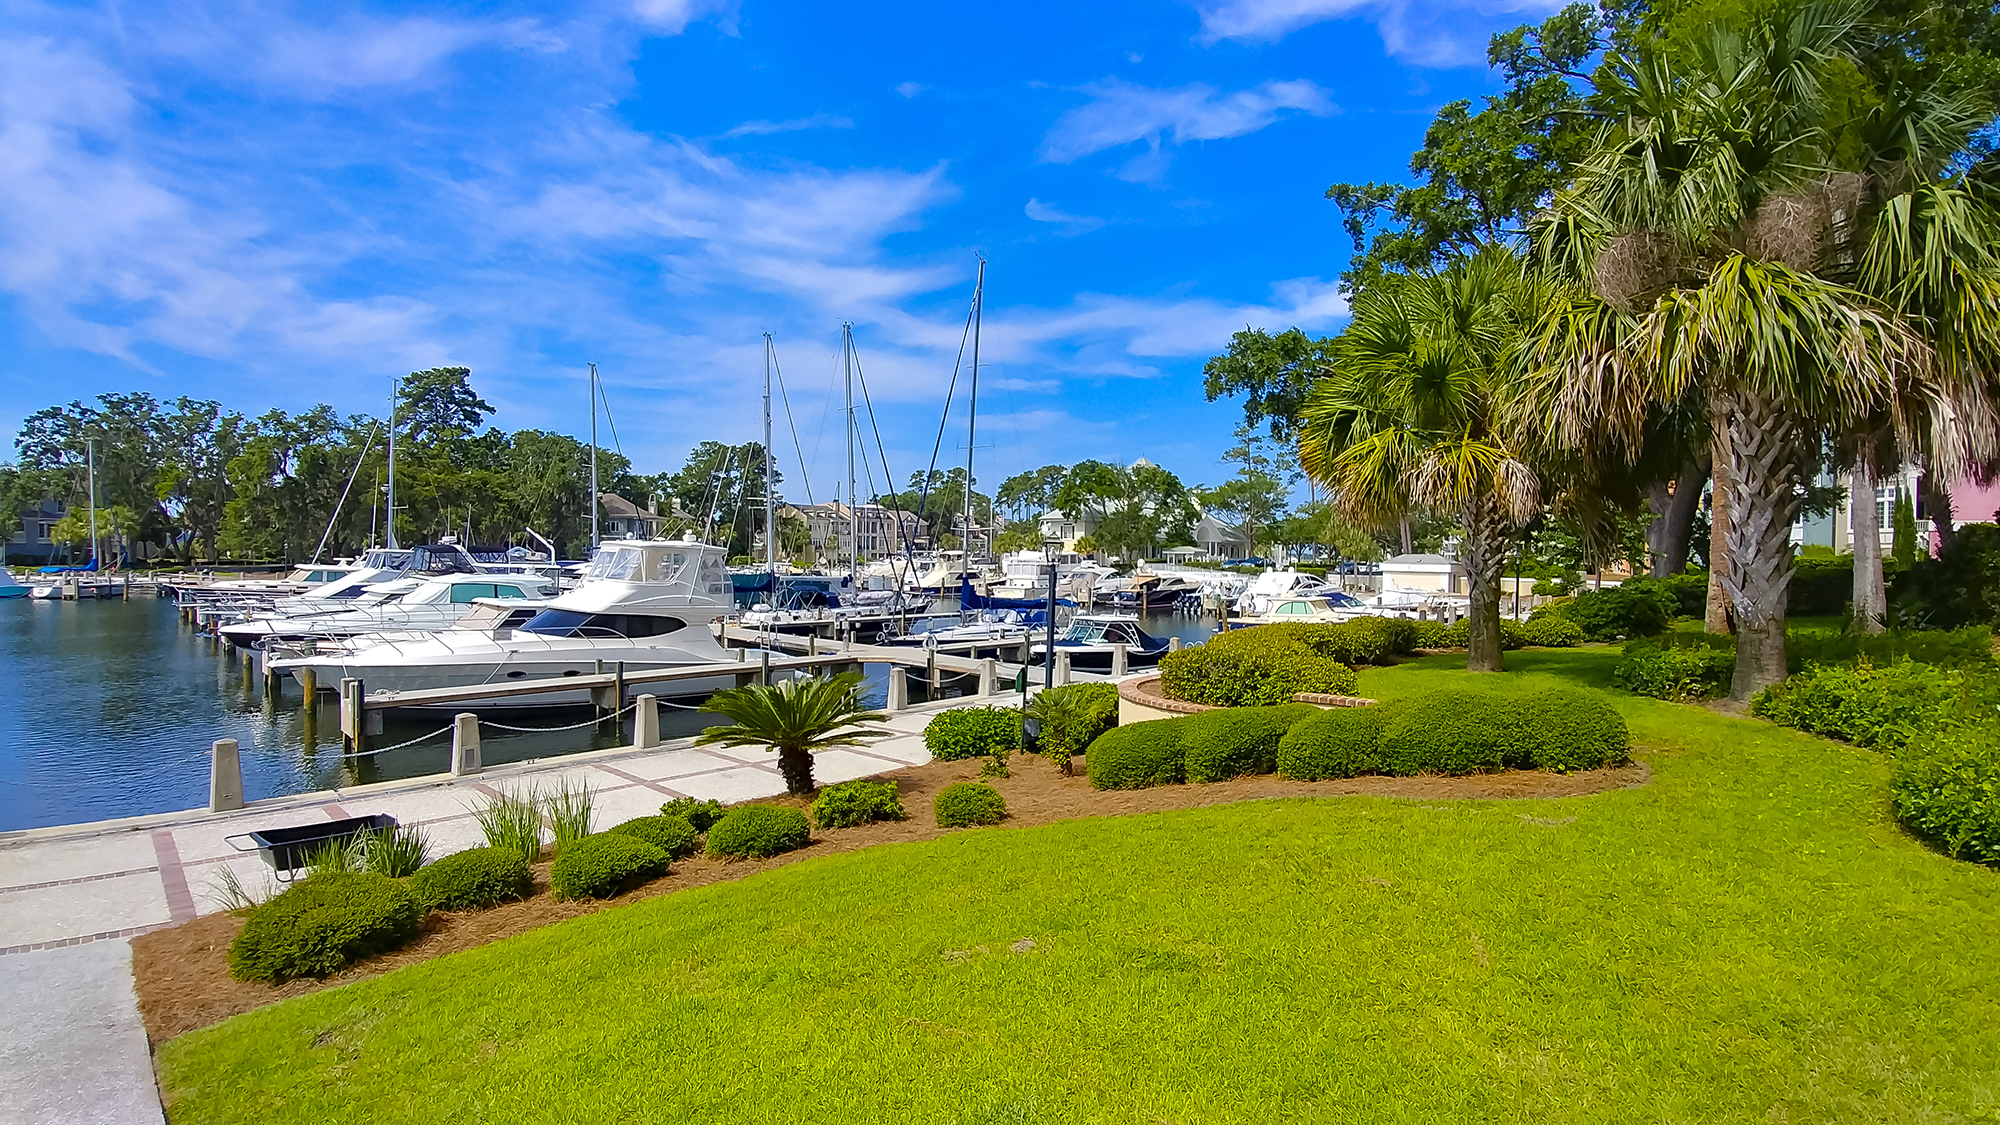 Stunning Private Marina on a Lock System with Direct Access to the Intra-Coastal Waterway